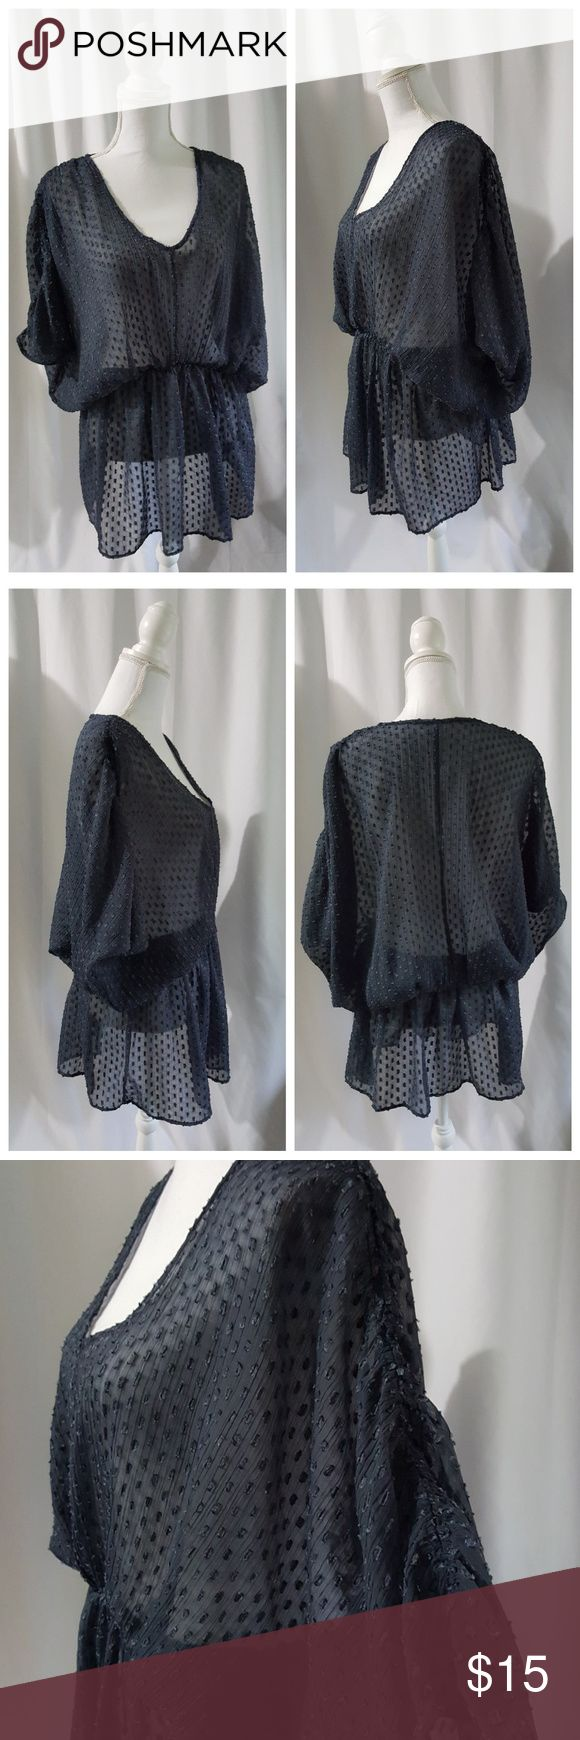 FREE PEOPLE Gray Loose Fit Boho BLOUSE Textured polka dot. Sheer. Blouson.  Rouched batwing sleeve. Boho.  by Free People size XS  Excellent Pre-Loved Condition! Free People Tops